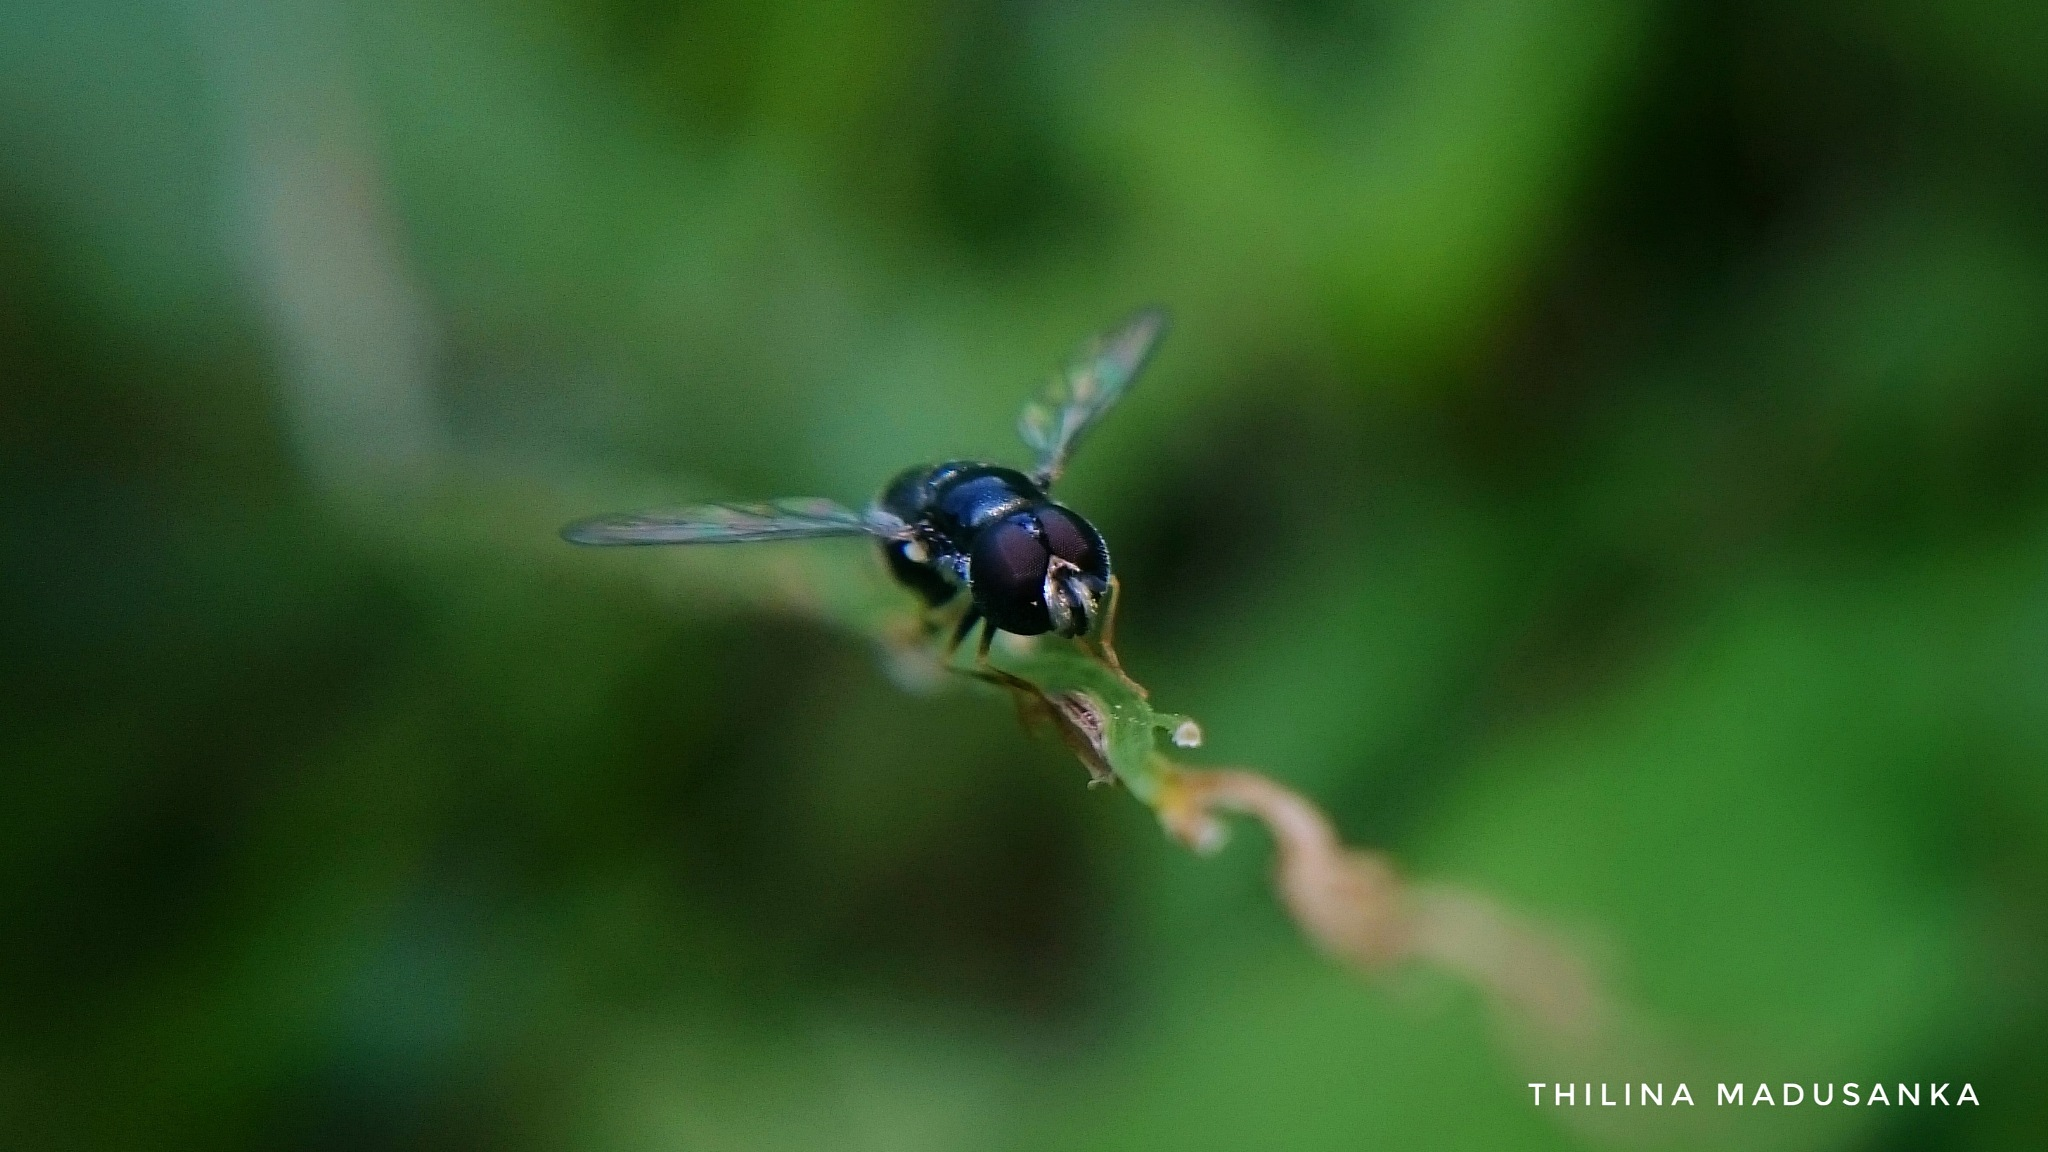 #Macro_Shot Very little fly by Thilina Madusanka